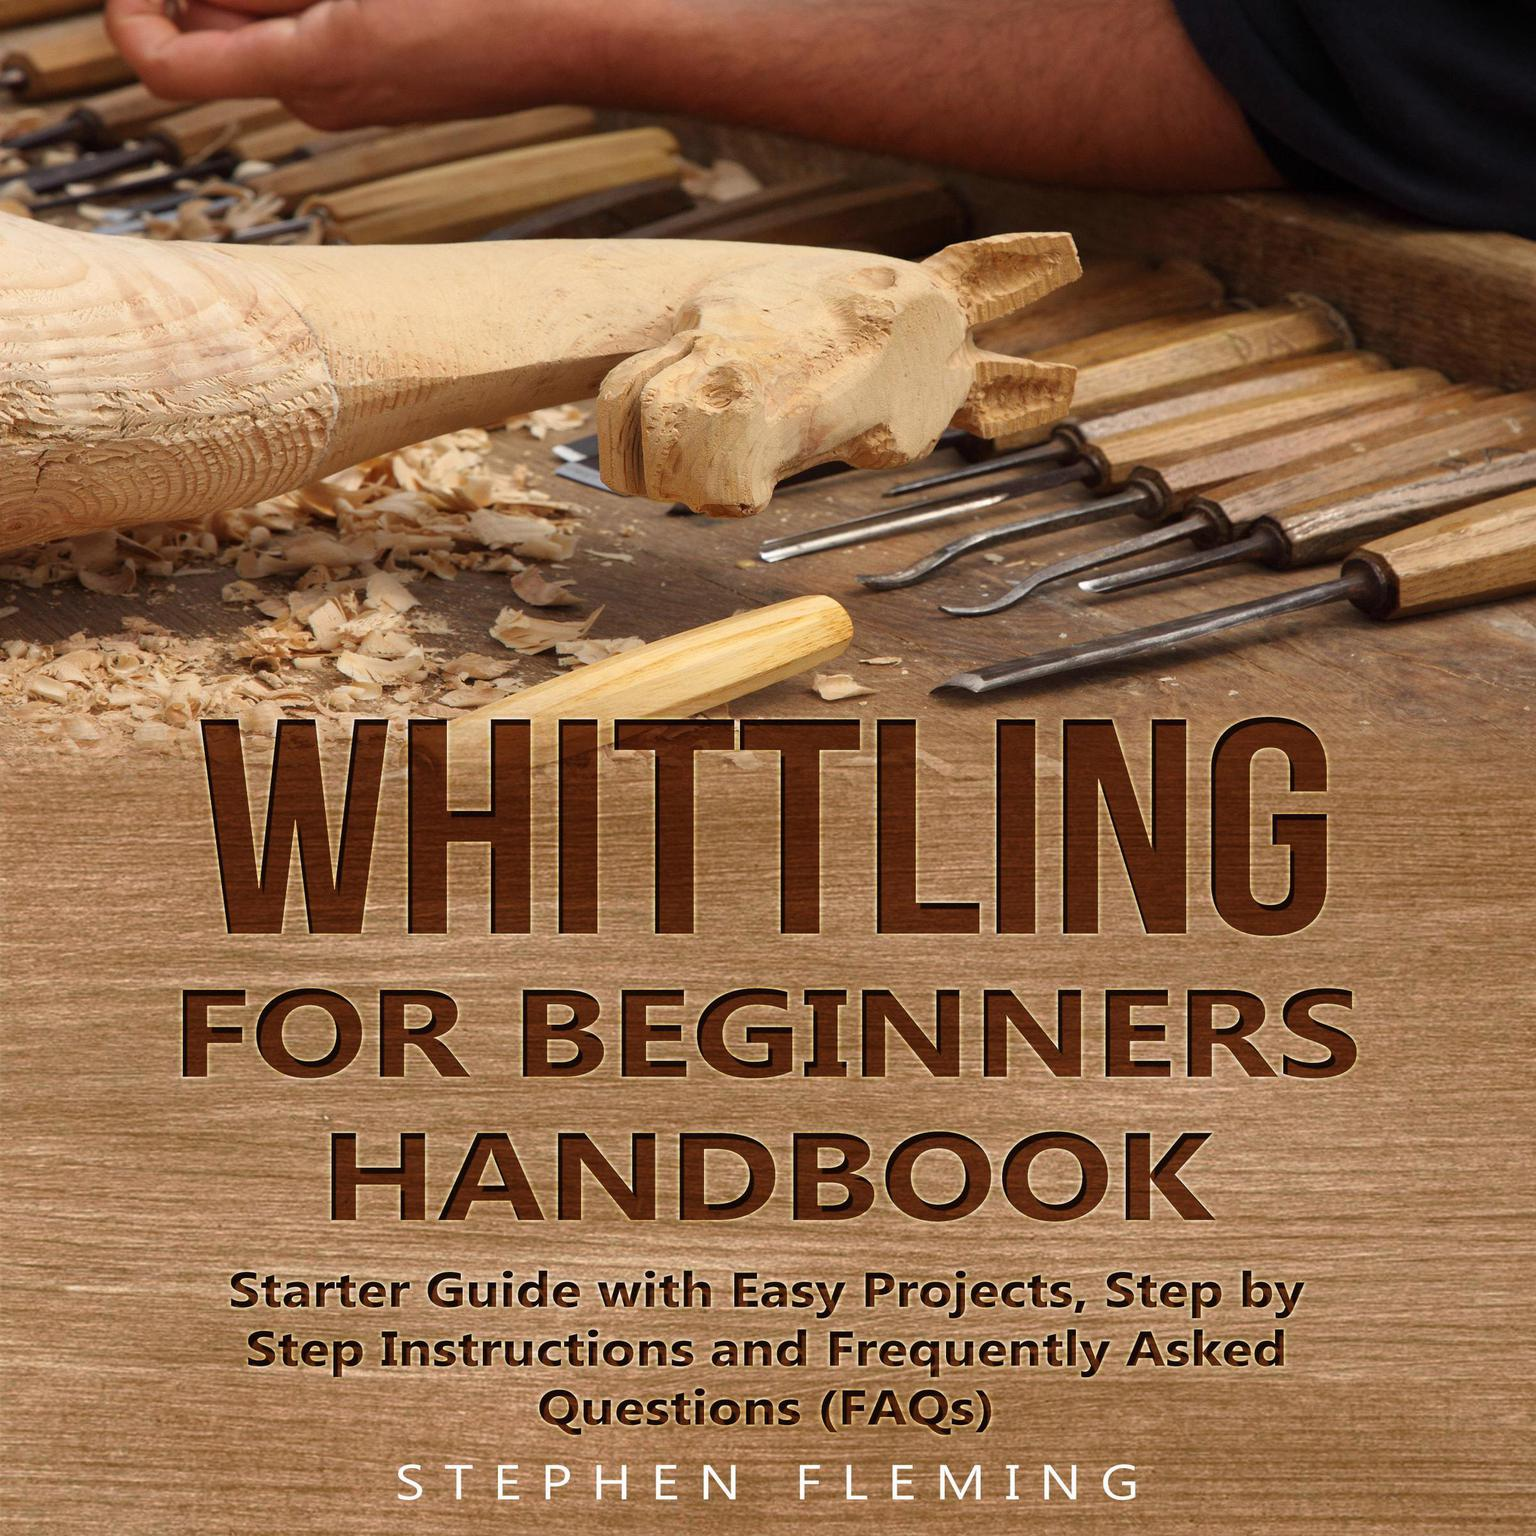 Whittling for Beginners Handbook: Starter Guide with Easy Projects, Step by Step Instructions and Frequently Asked Questions (FAQs) Audiobook, by Stephen Fleming